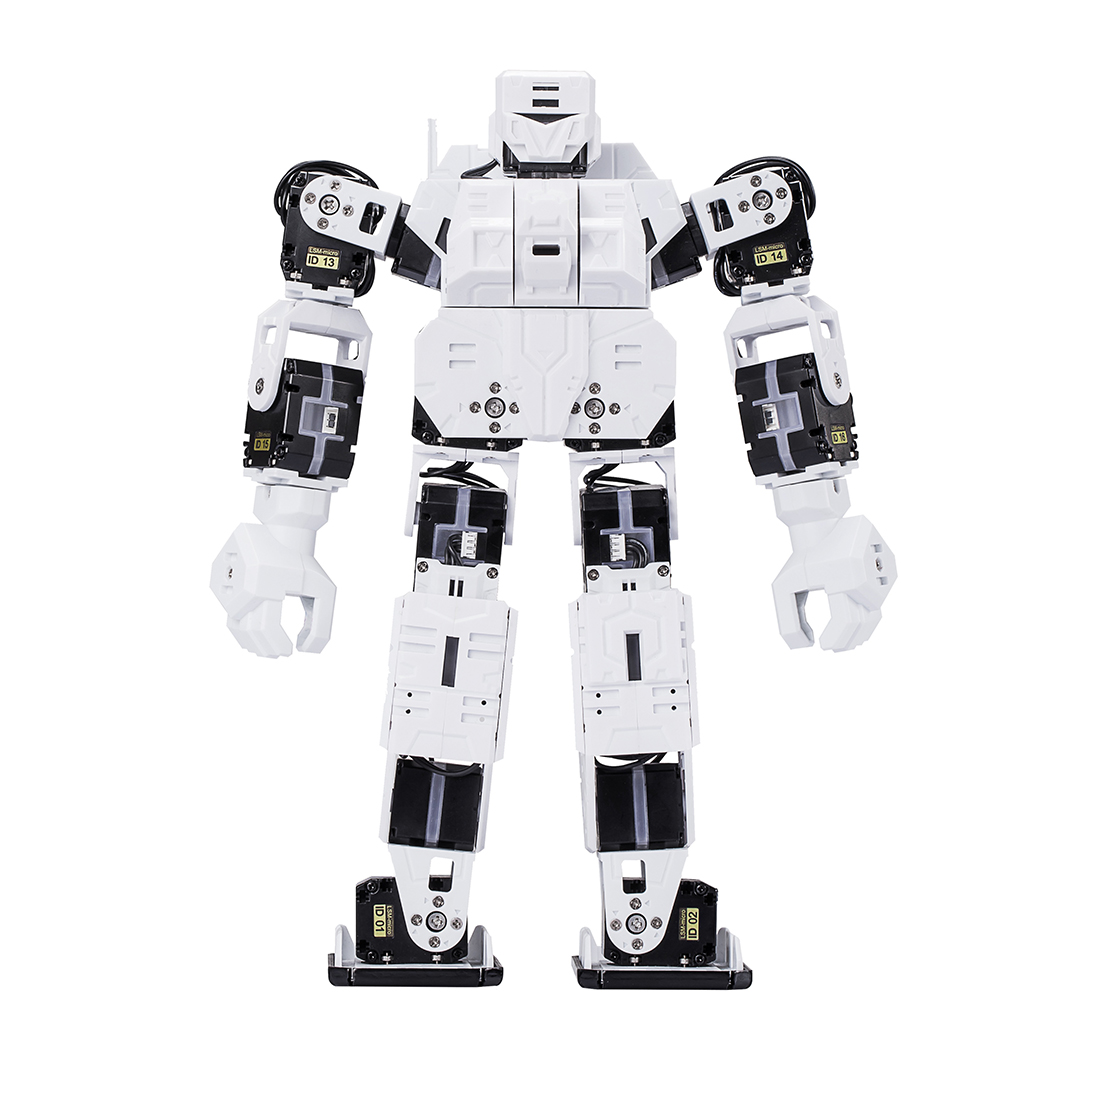 New Hot 27cm My DIY Robot Creative Time LINE-Core M Graphical Programmable Humanoid Robot Educational Robot Kit - White/Red/Blue